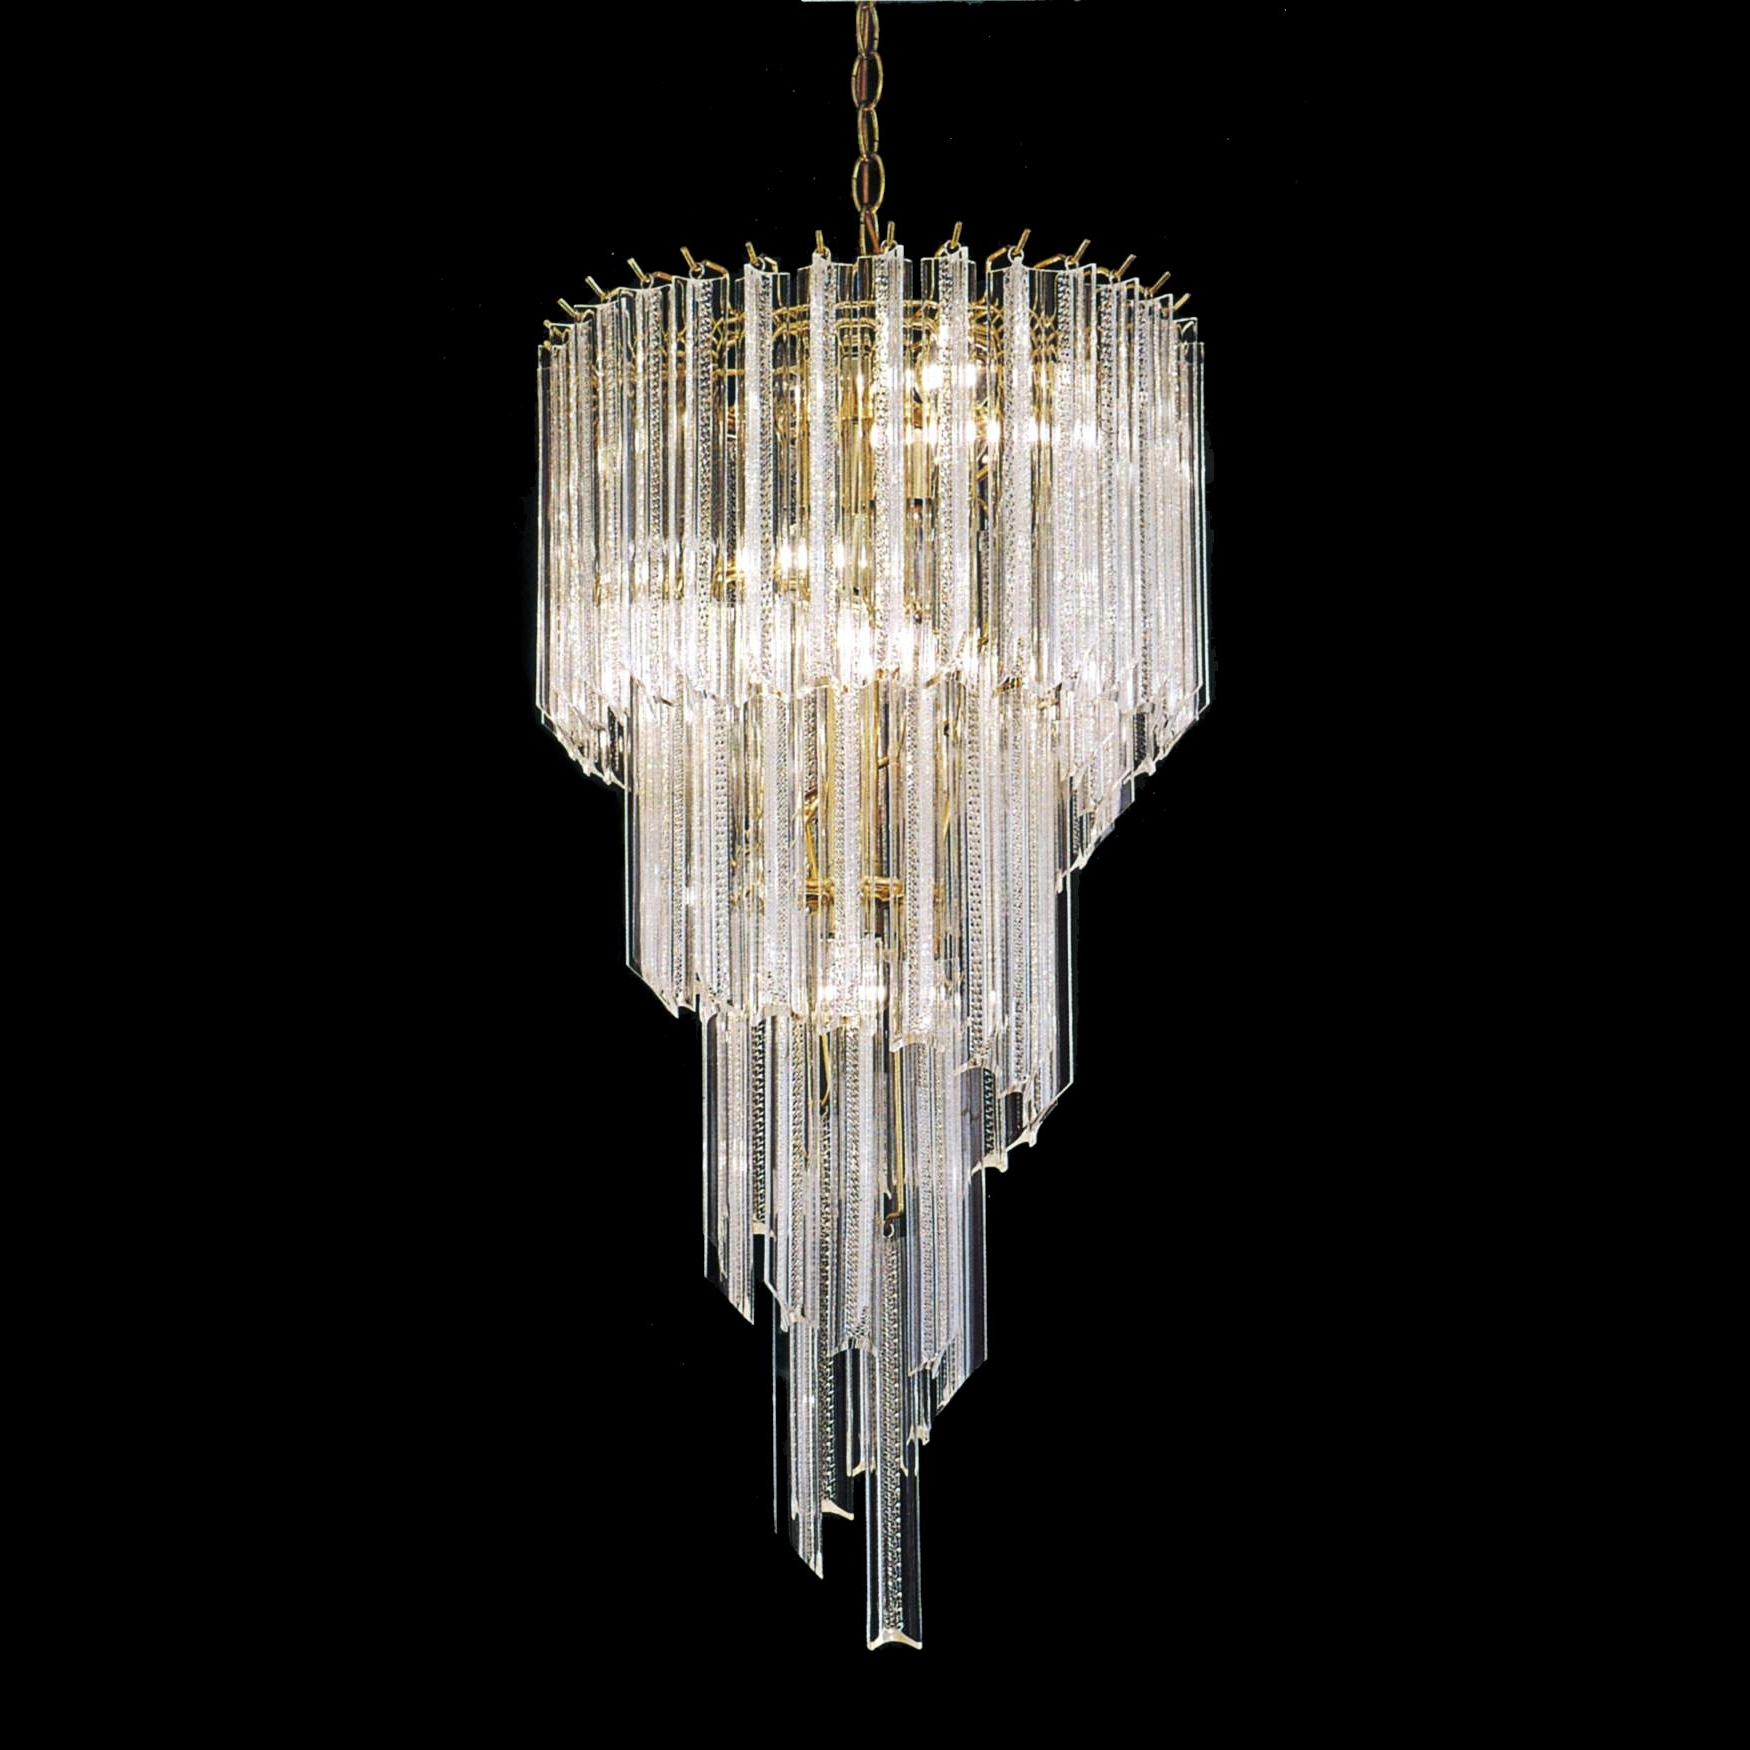 Acrylic Chandeliers For Recent Chandeliers Design : Marvelous Acrylic Light Polished Brass Spiral (View 8 of 20)